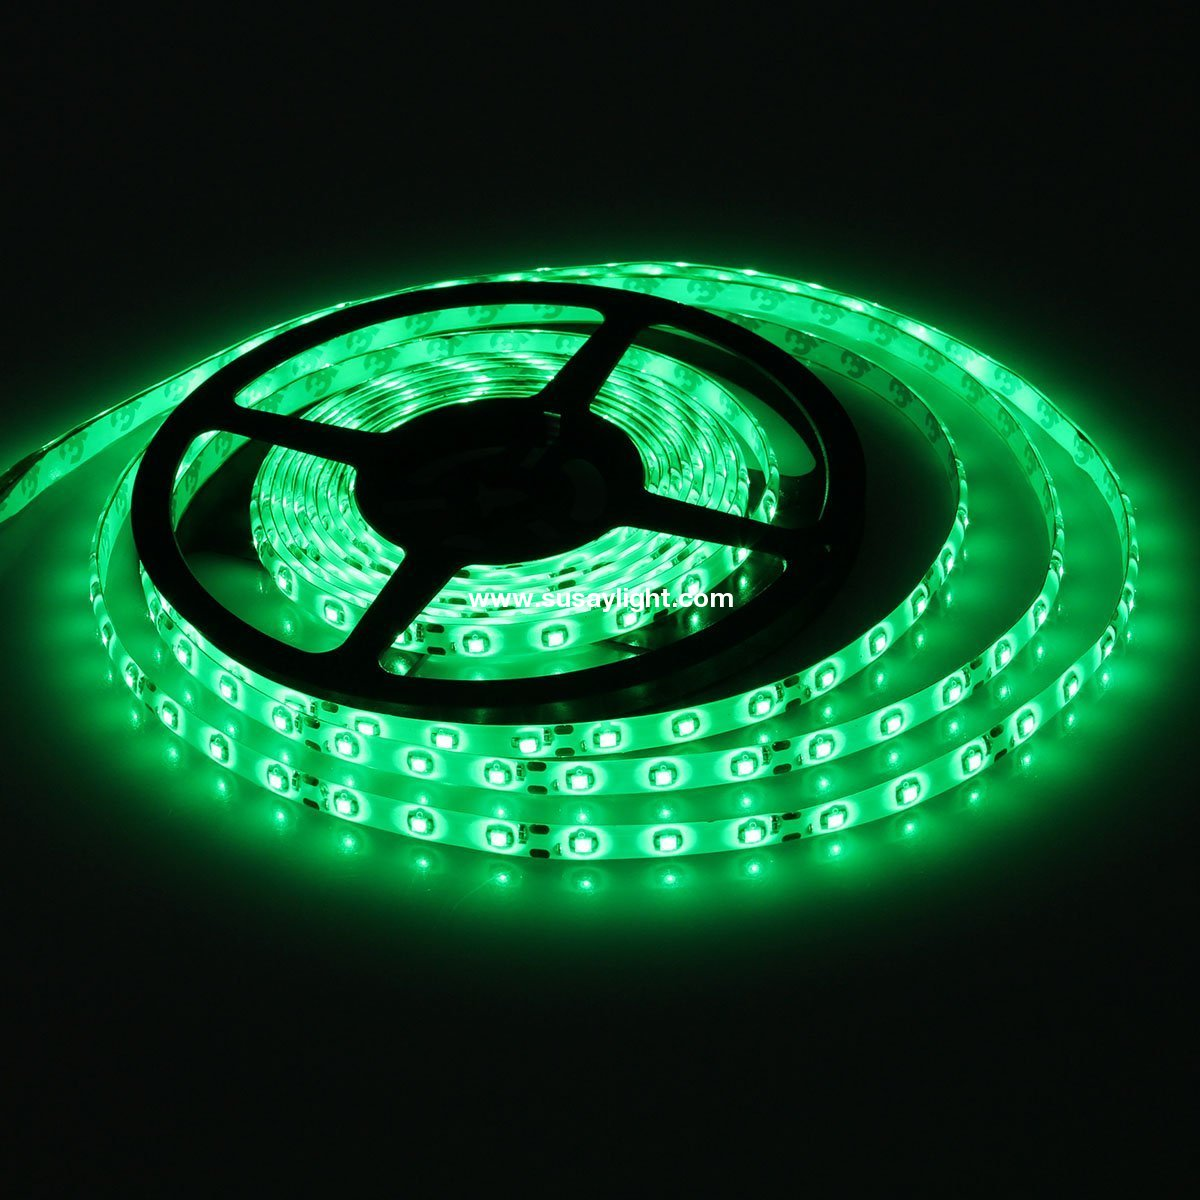 Products led strip light waterproof green led mozeypictures Image collections